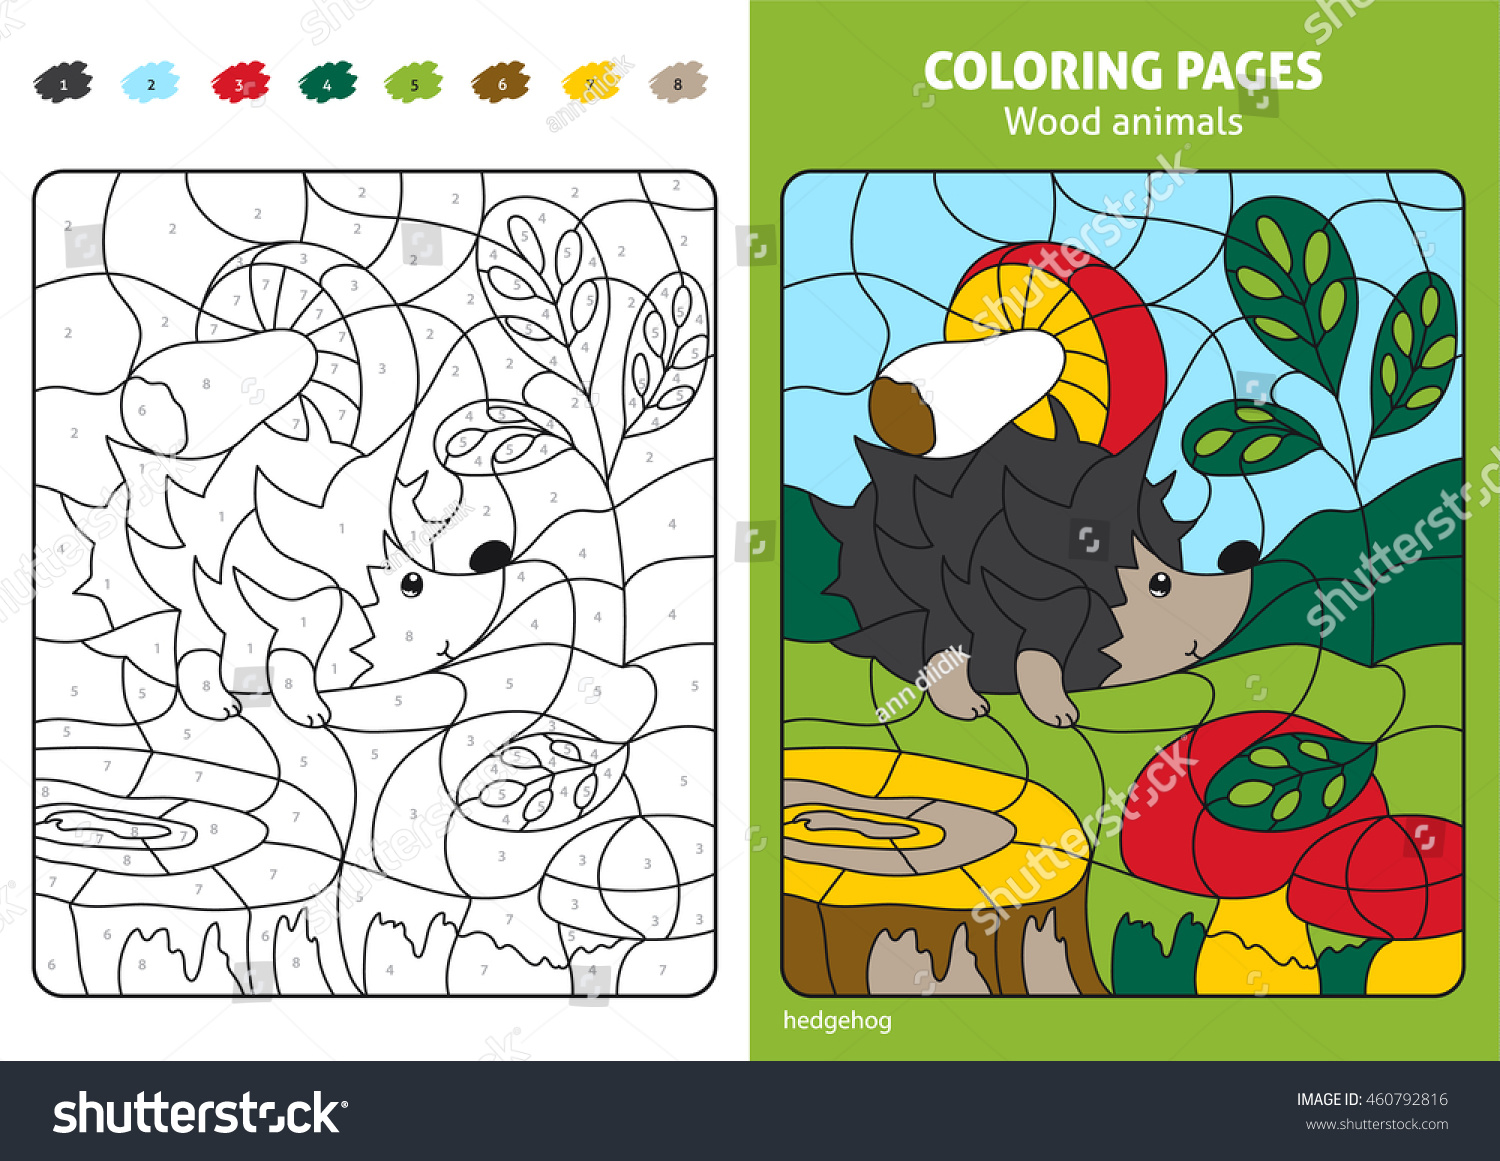 Wood Animals Coloring Page Kids Hedgehog Stock Vector (2018 ...